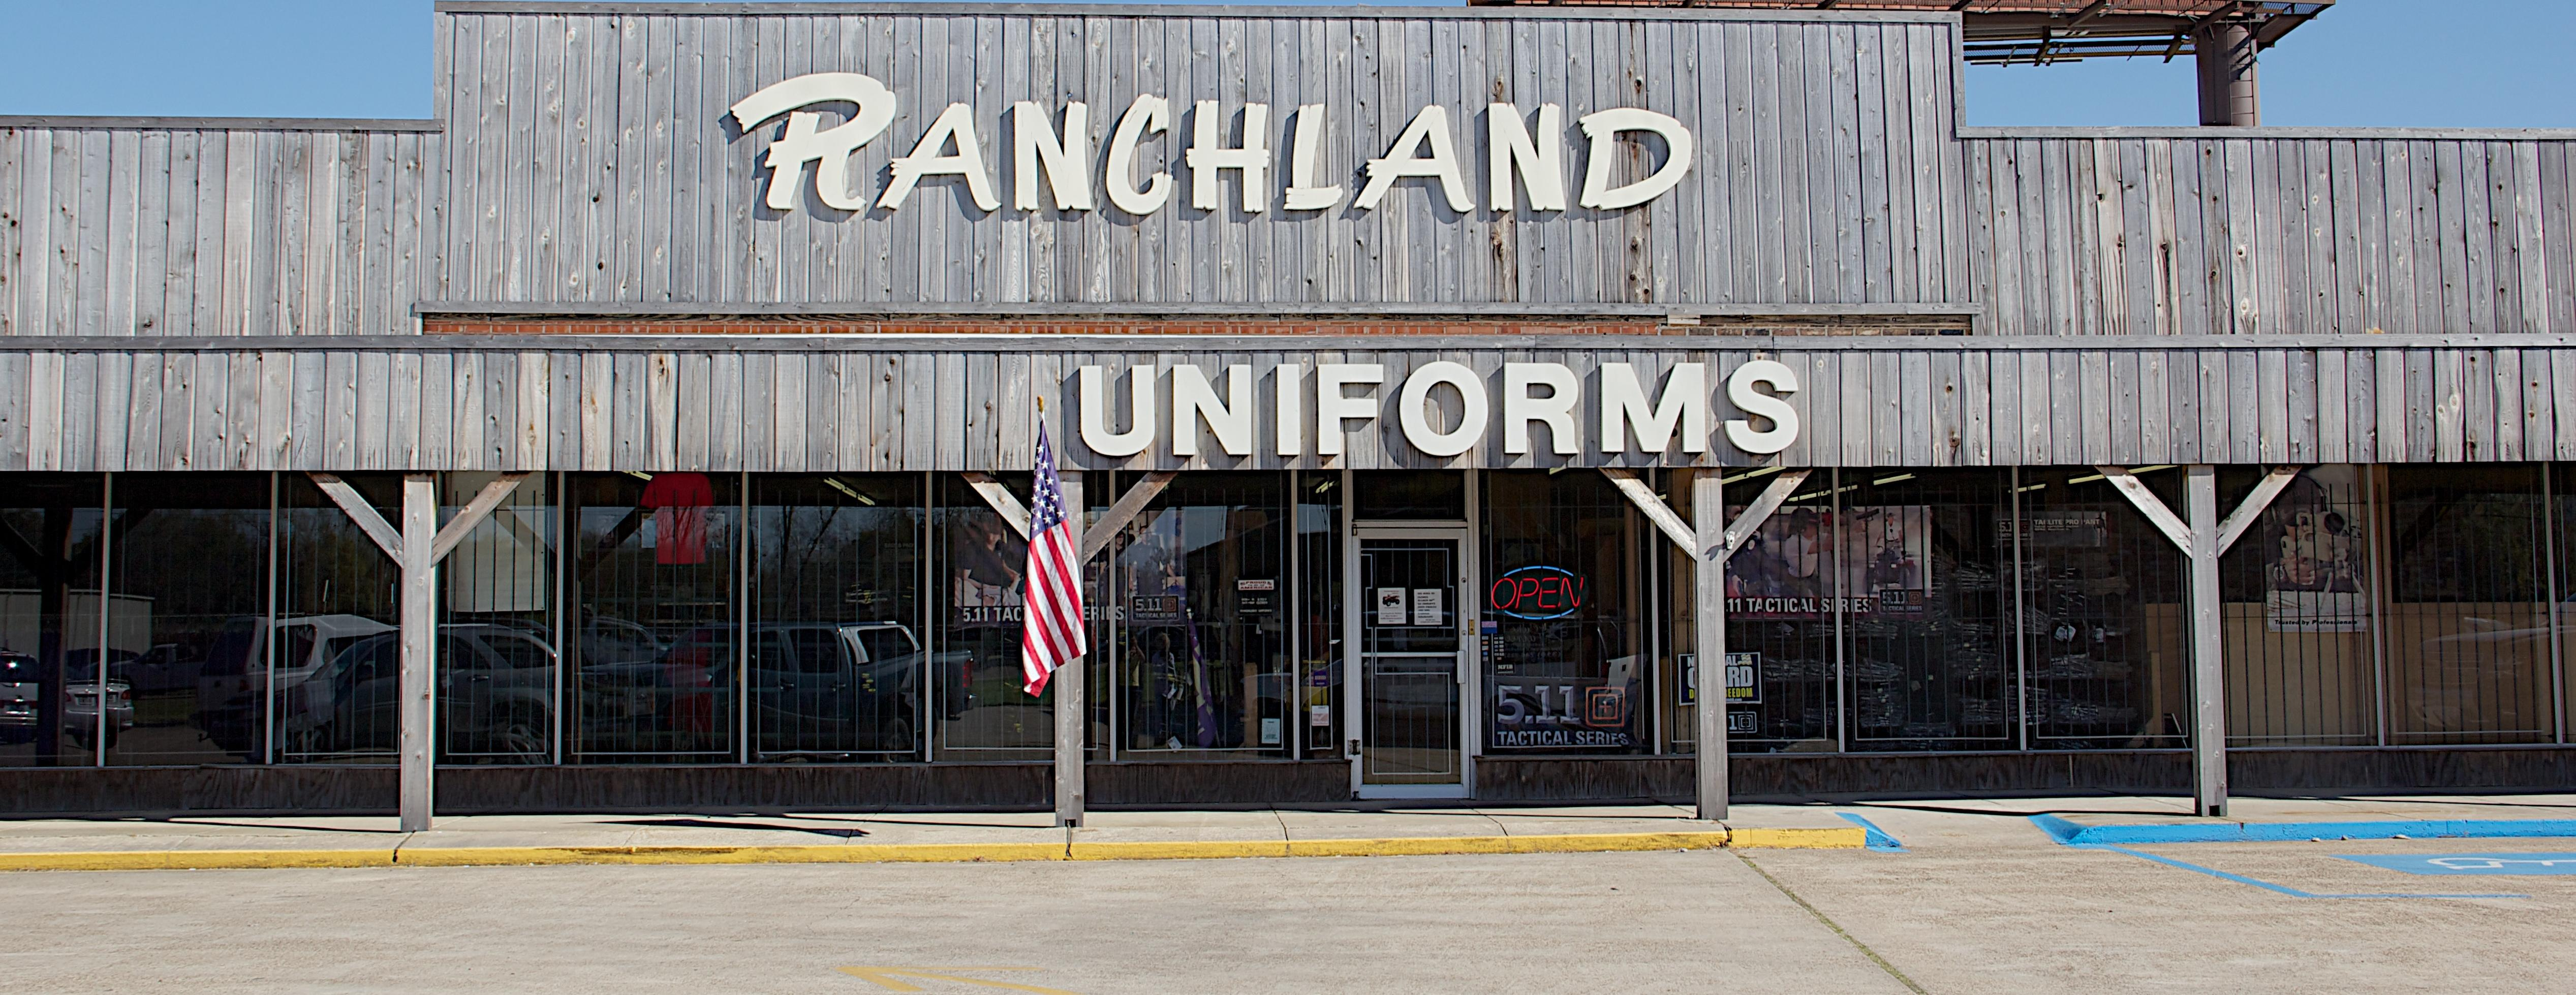 Ranchland Uniforms image 9